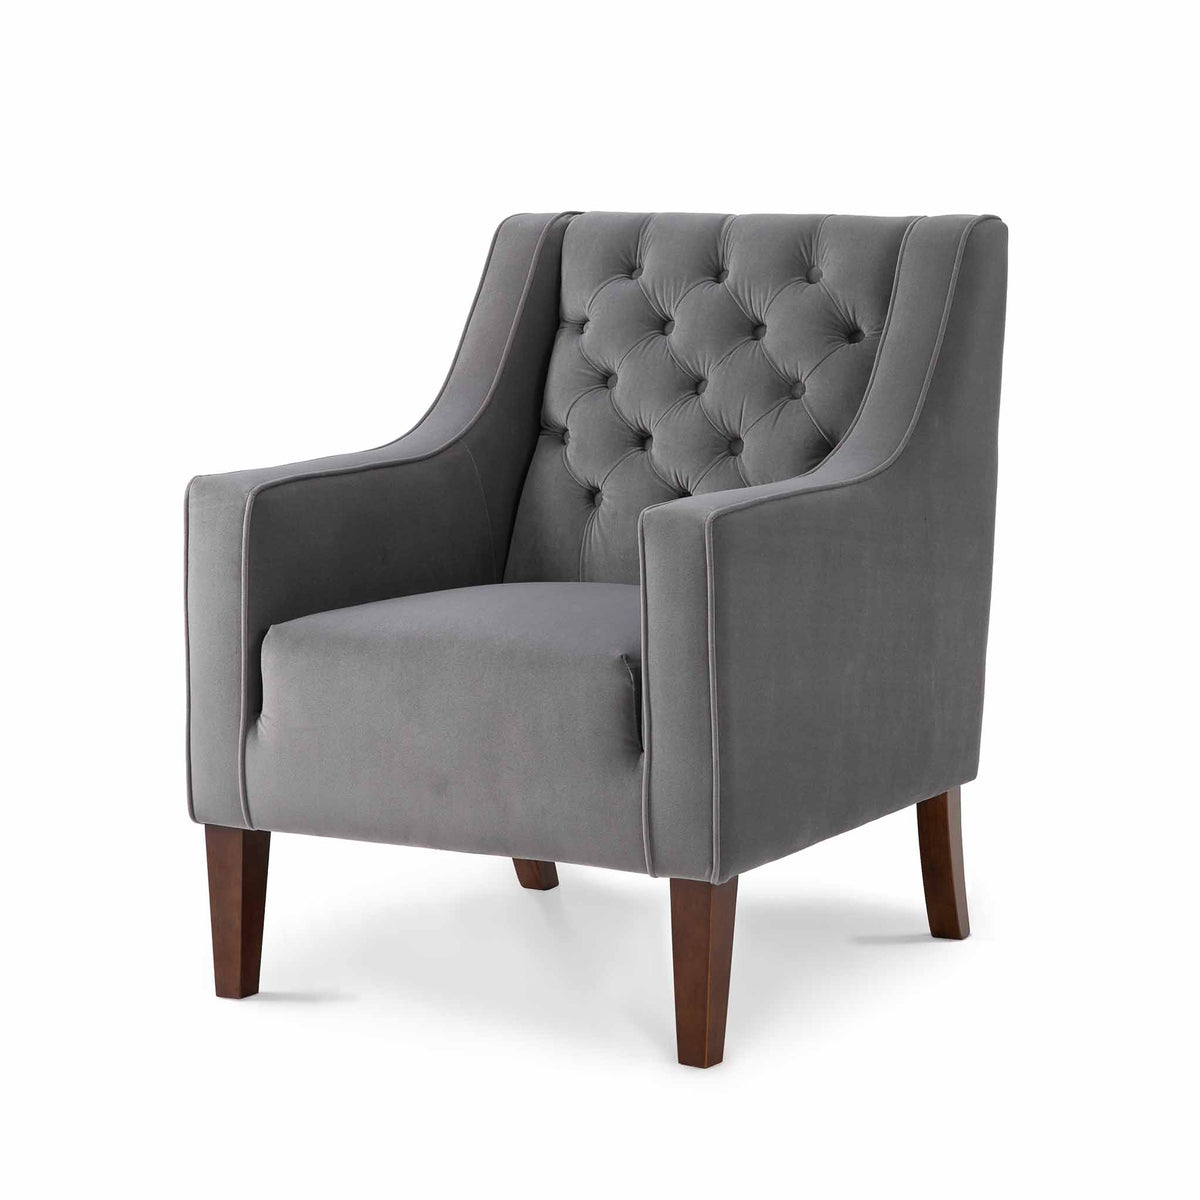 Eliza Grey Chesterfield Arm Chair - Side view